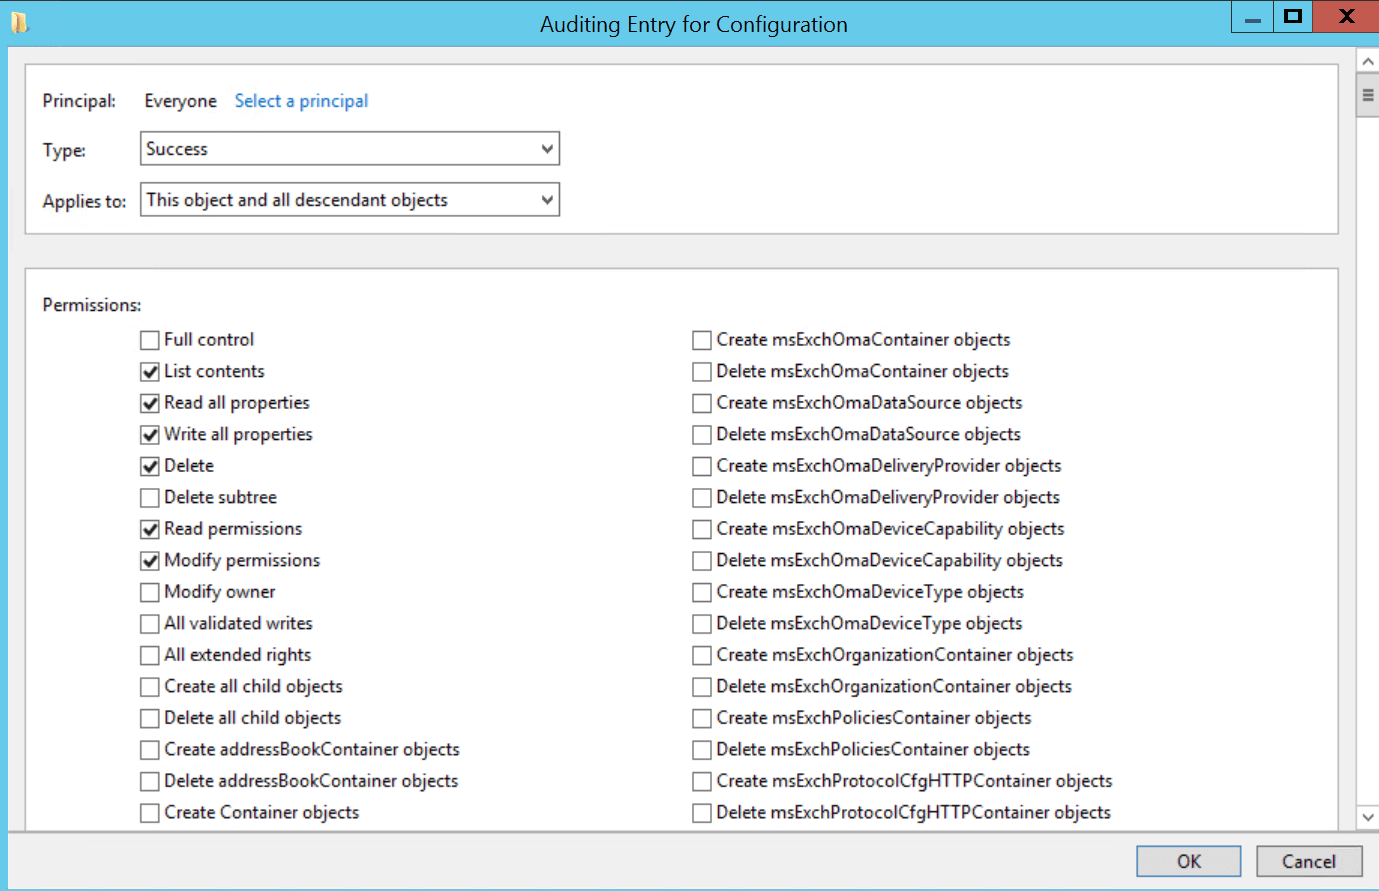 Configuring Object level Auditing